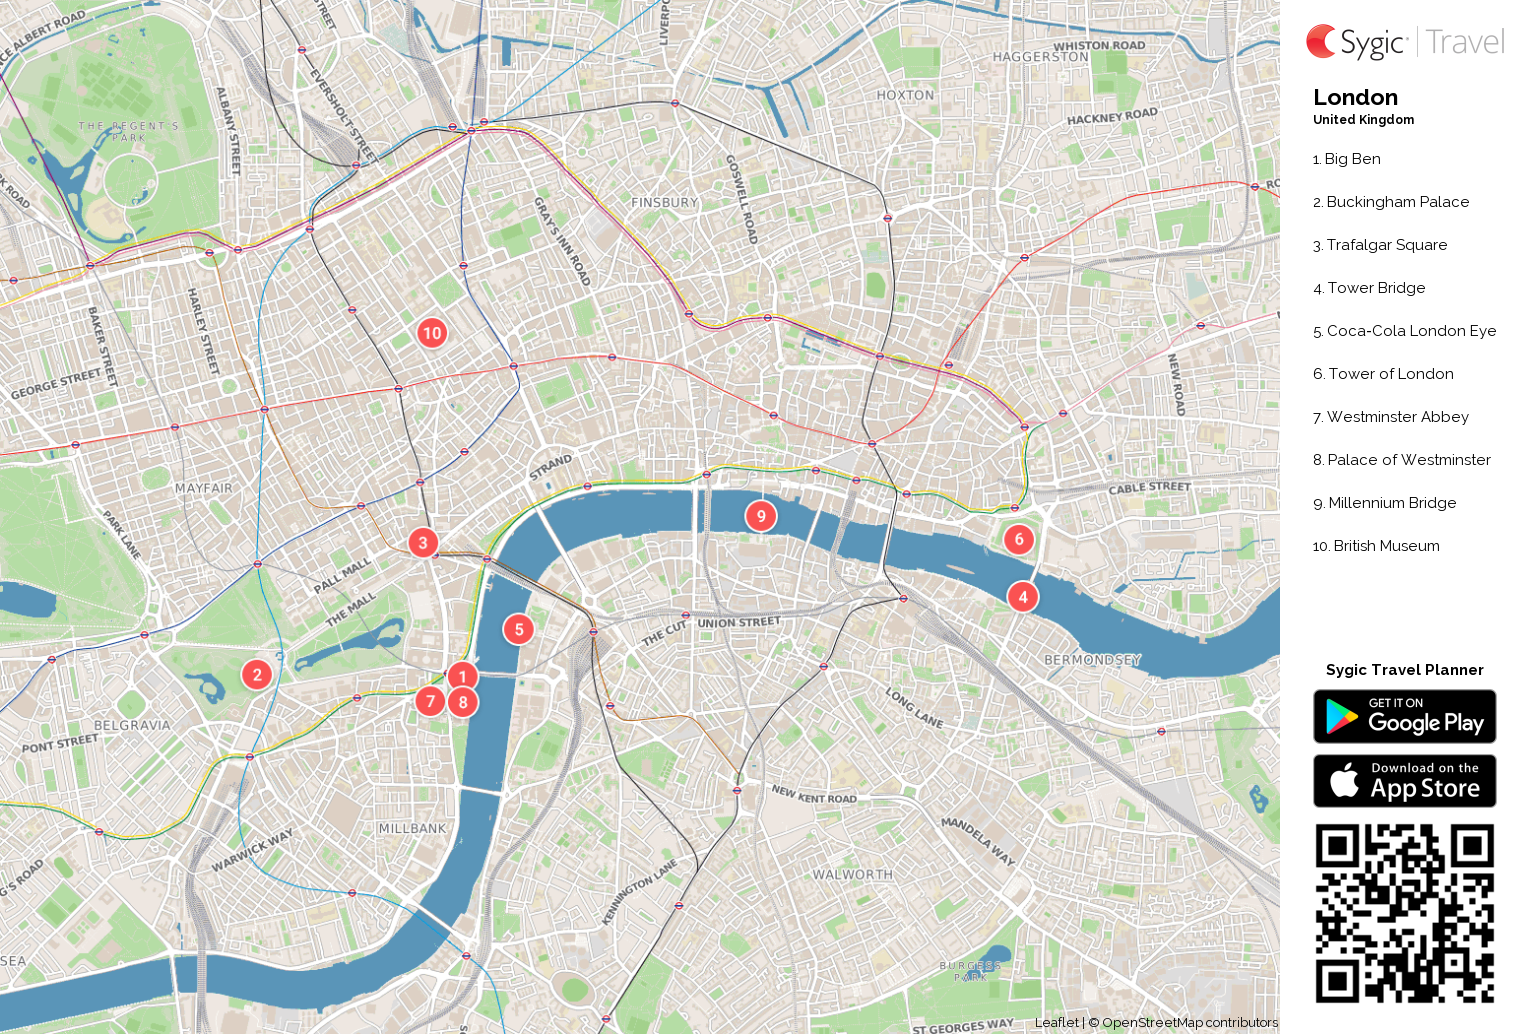 London Printable Tourist Map – Tourist Maps of London